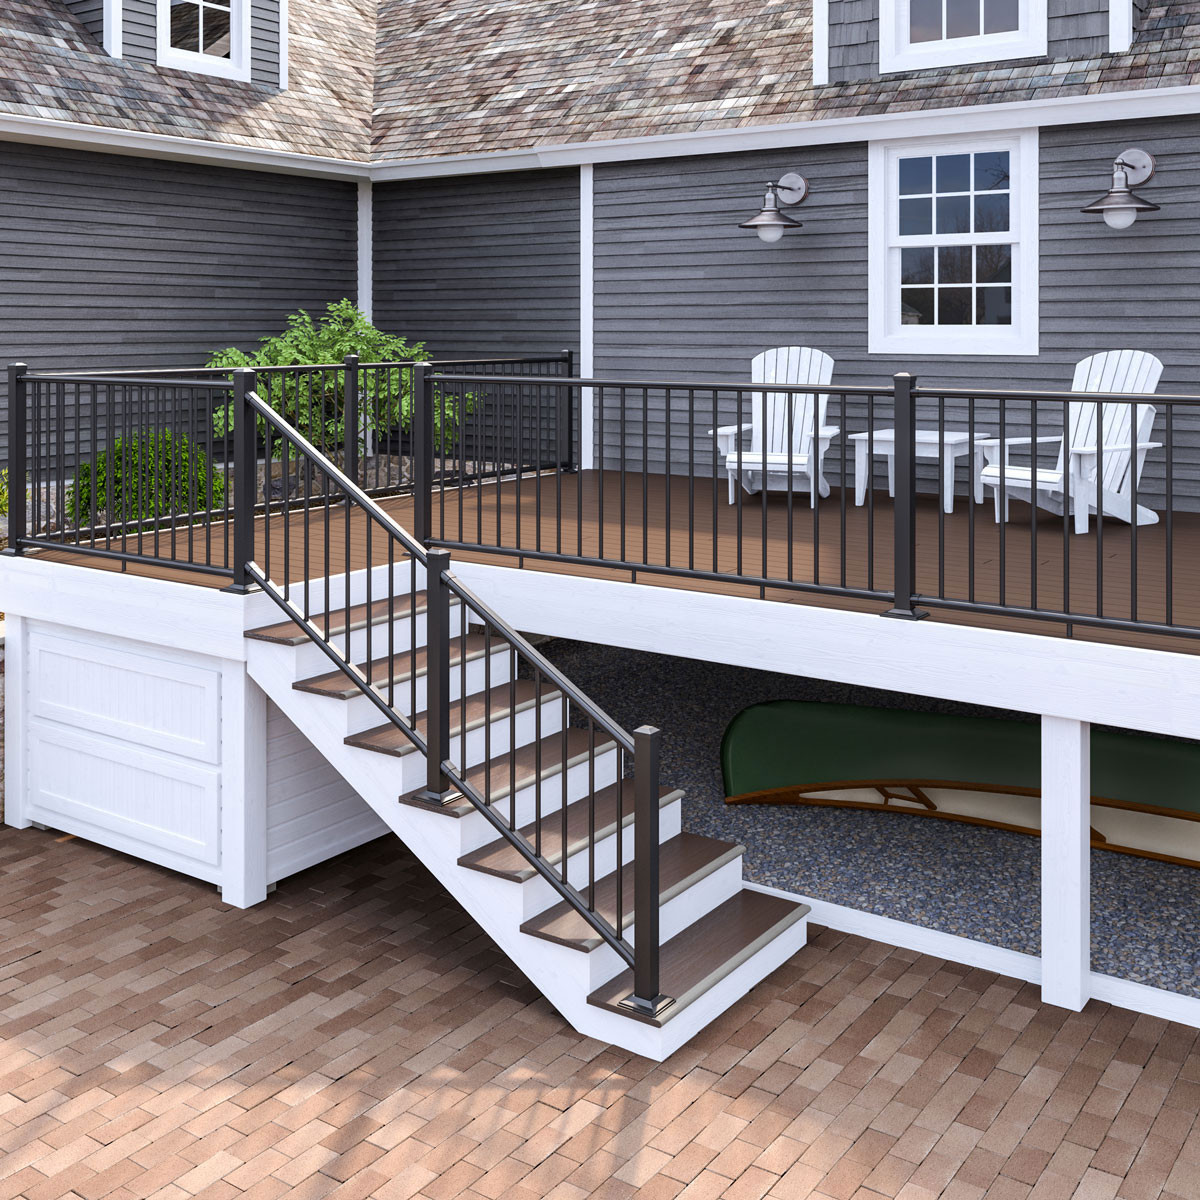 Deckorators ALX Classic Bracketed Post Kit - Satin Black - Installed with gate and panels